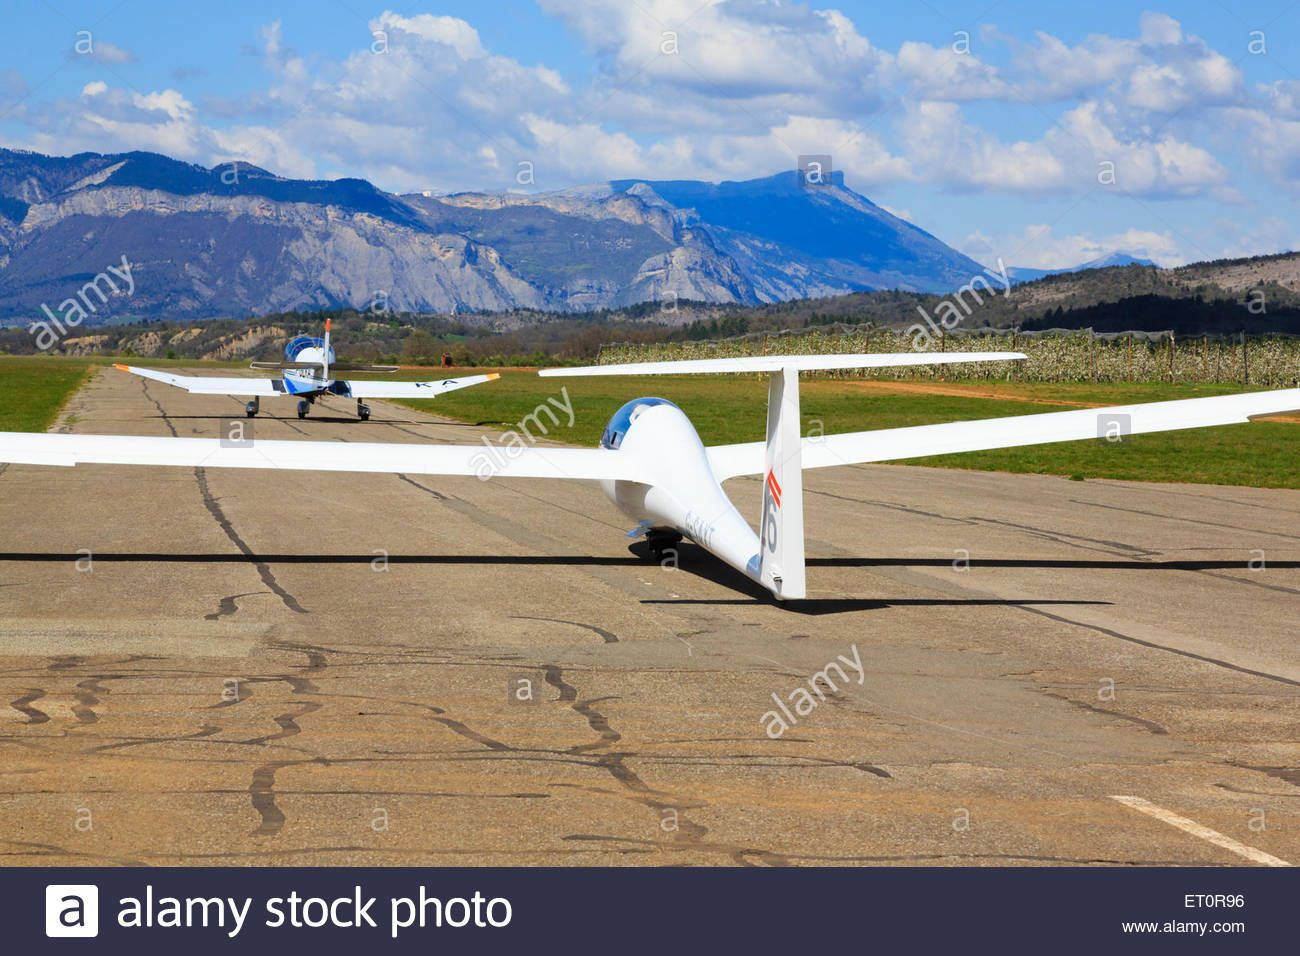 Schempp Hirth Duo Discus Xt Advanced Two Seat Glider Starting Aerotow Stock Photo 83611506 Alamy